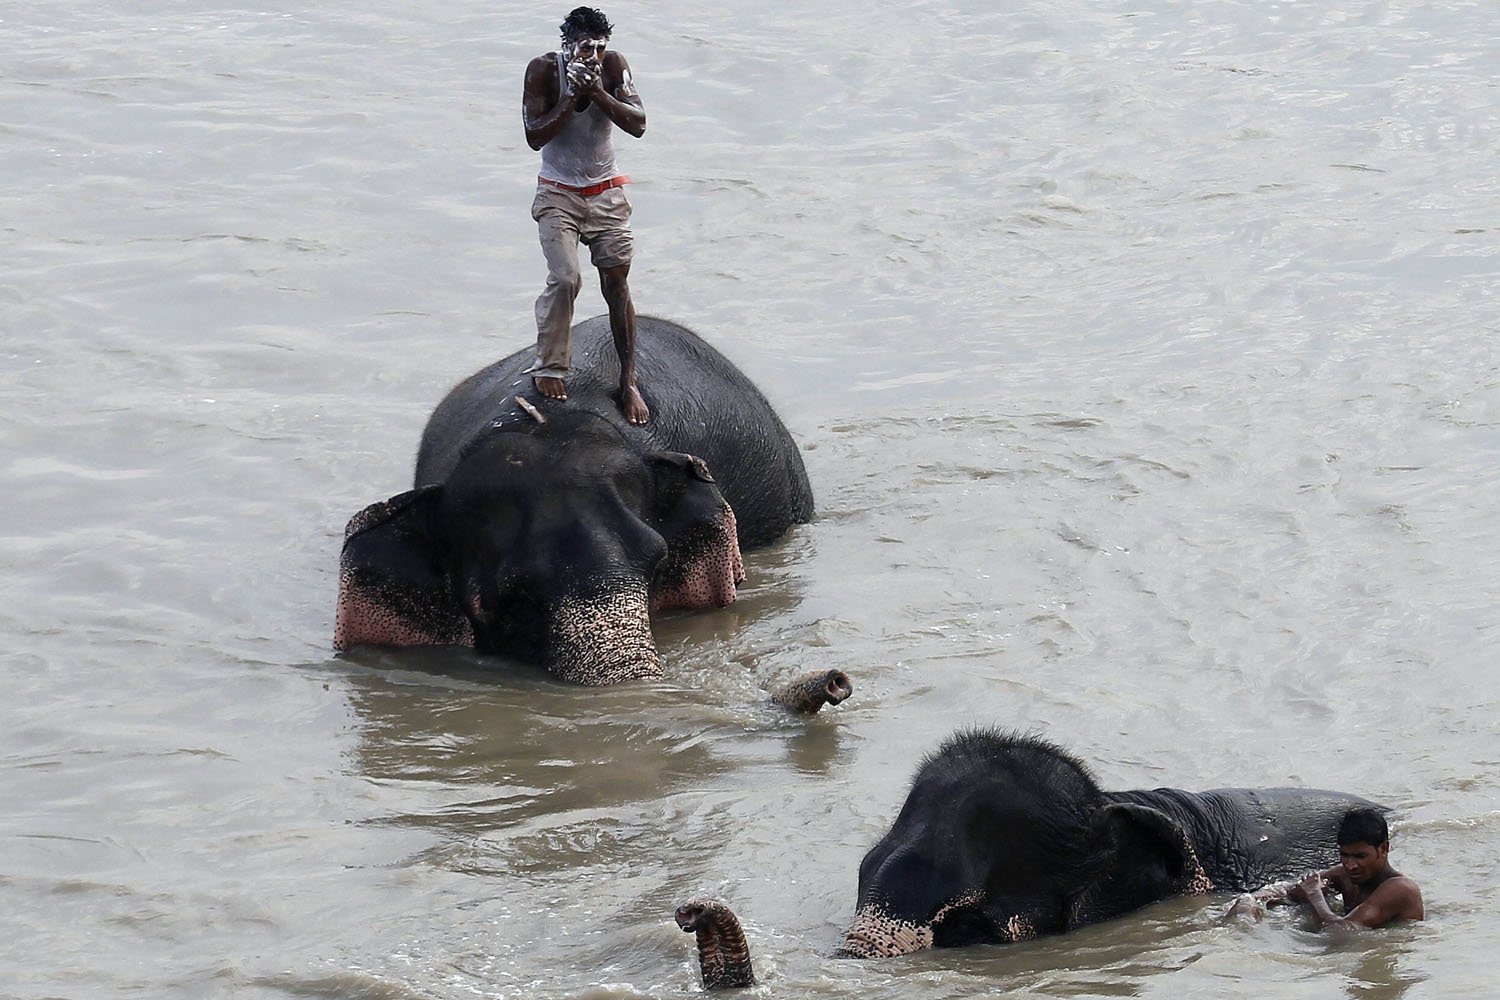 Sept. 25, 2013.  A mahout bathes as he stands atop his elephant in the waters of the Yamuna river in New Delhi.